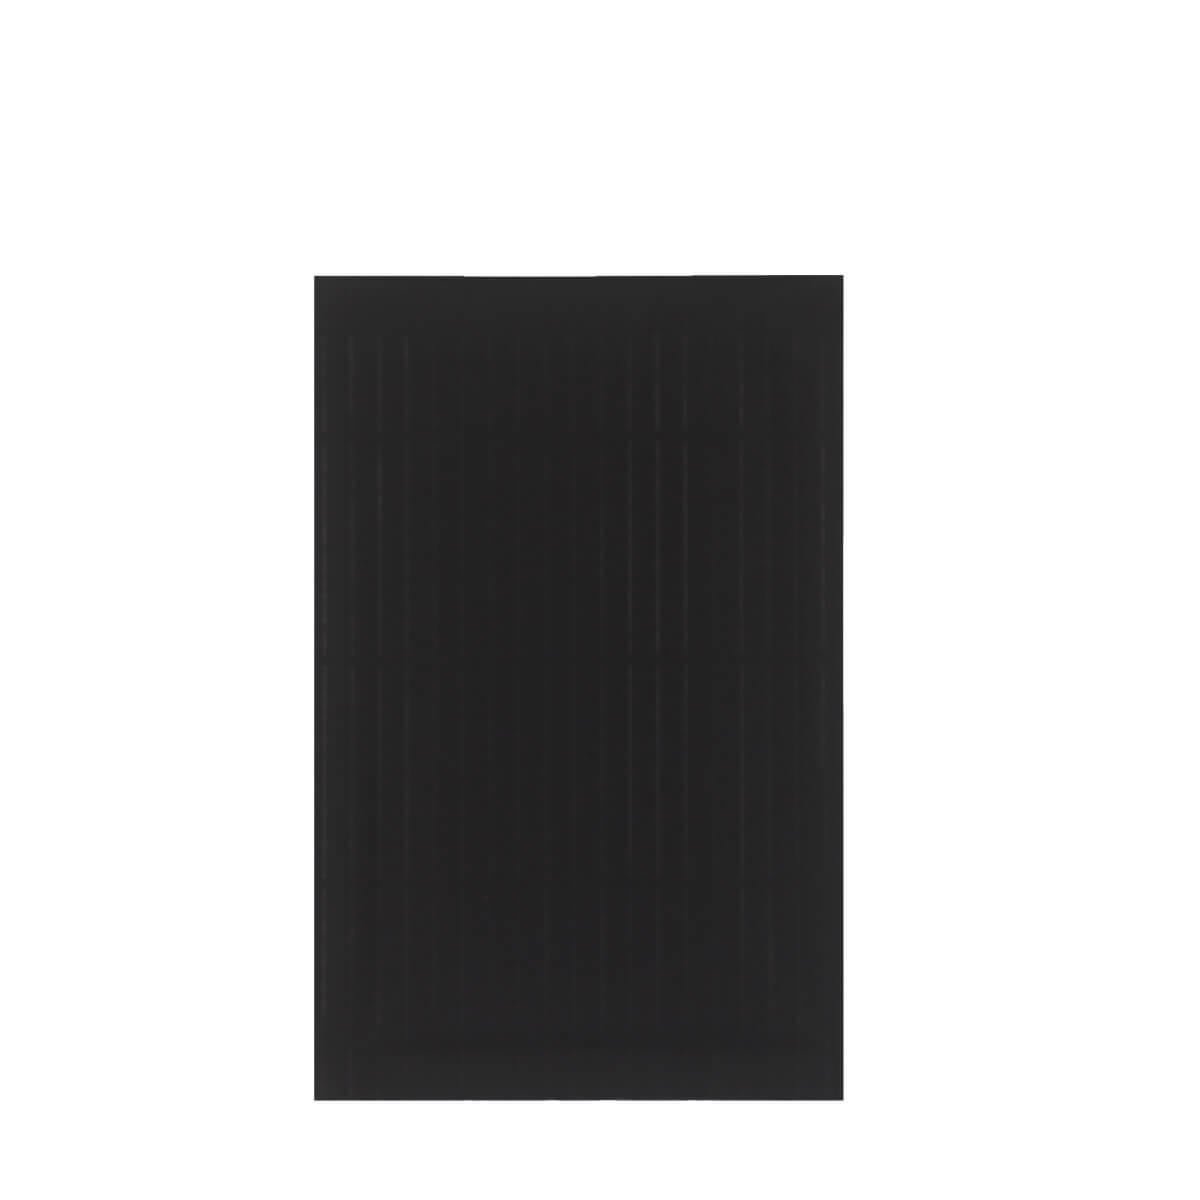 340 x 240mm BLACK PAPER PADDED ENVELOPES